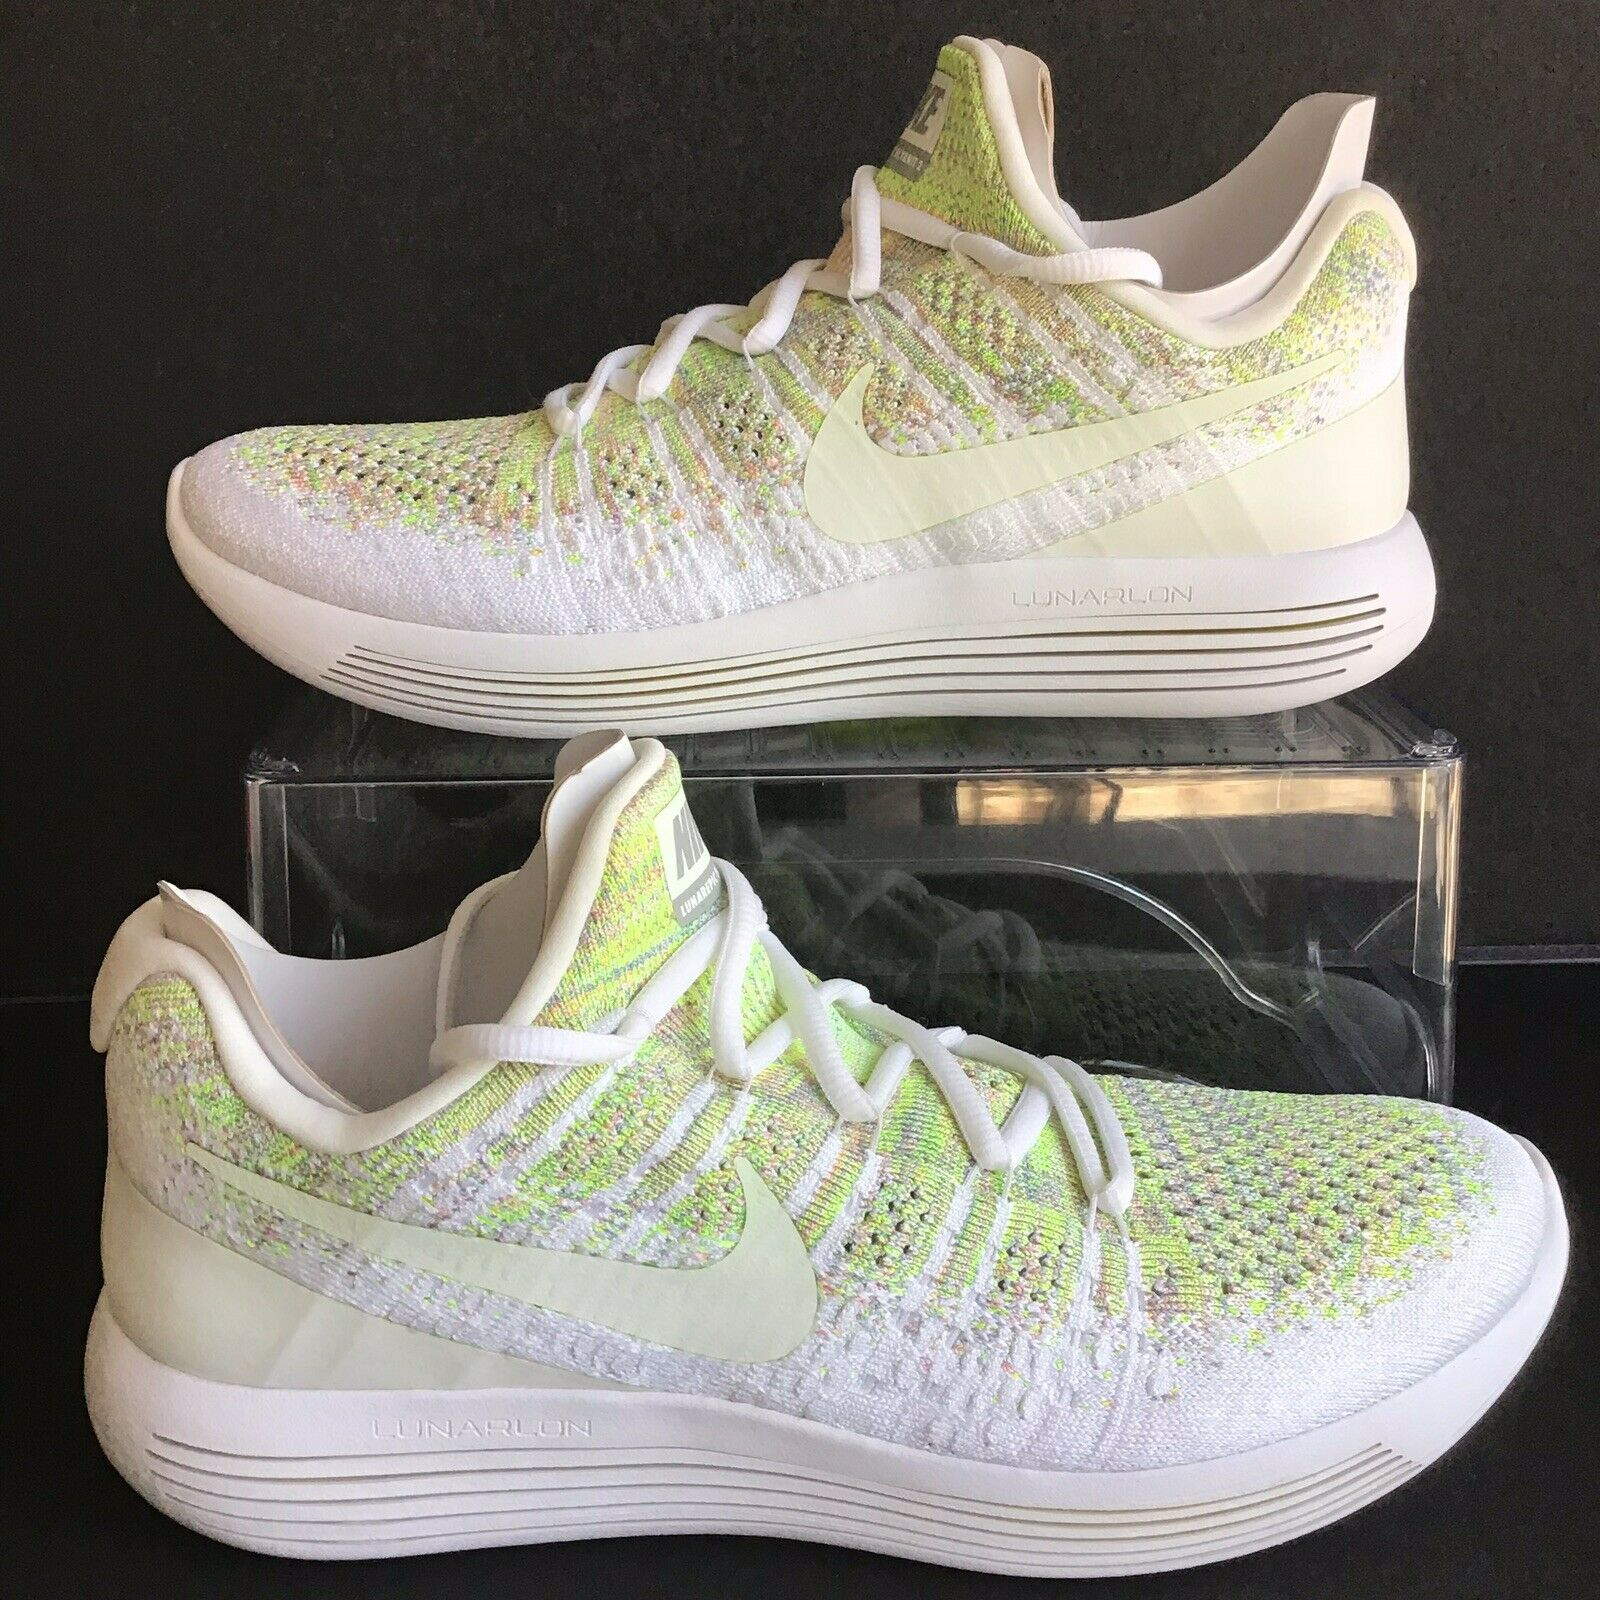 NIKE LUNAREPIC FLYKNIT 2 ID MULTI COLOR-WHITE MNS. SZ 10.5 (921531-994)